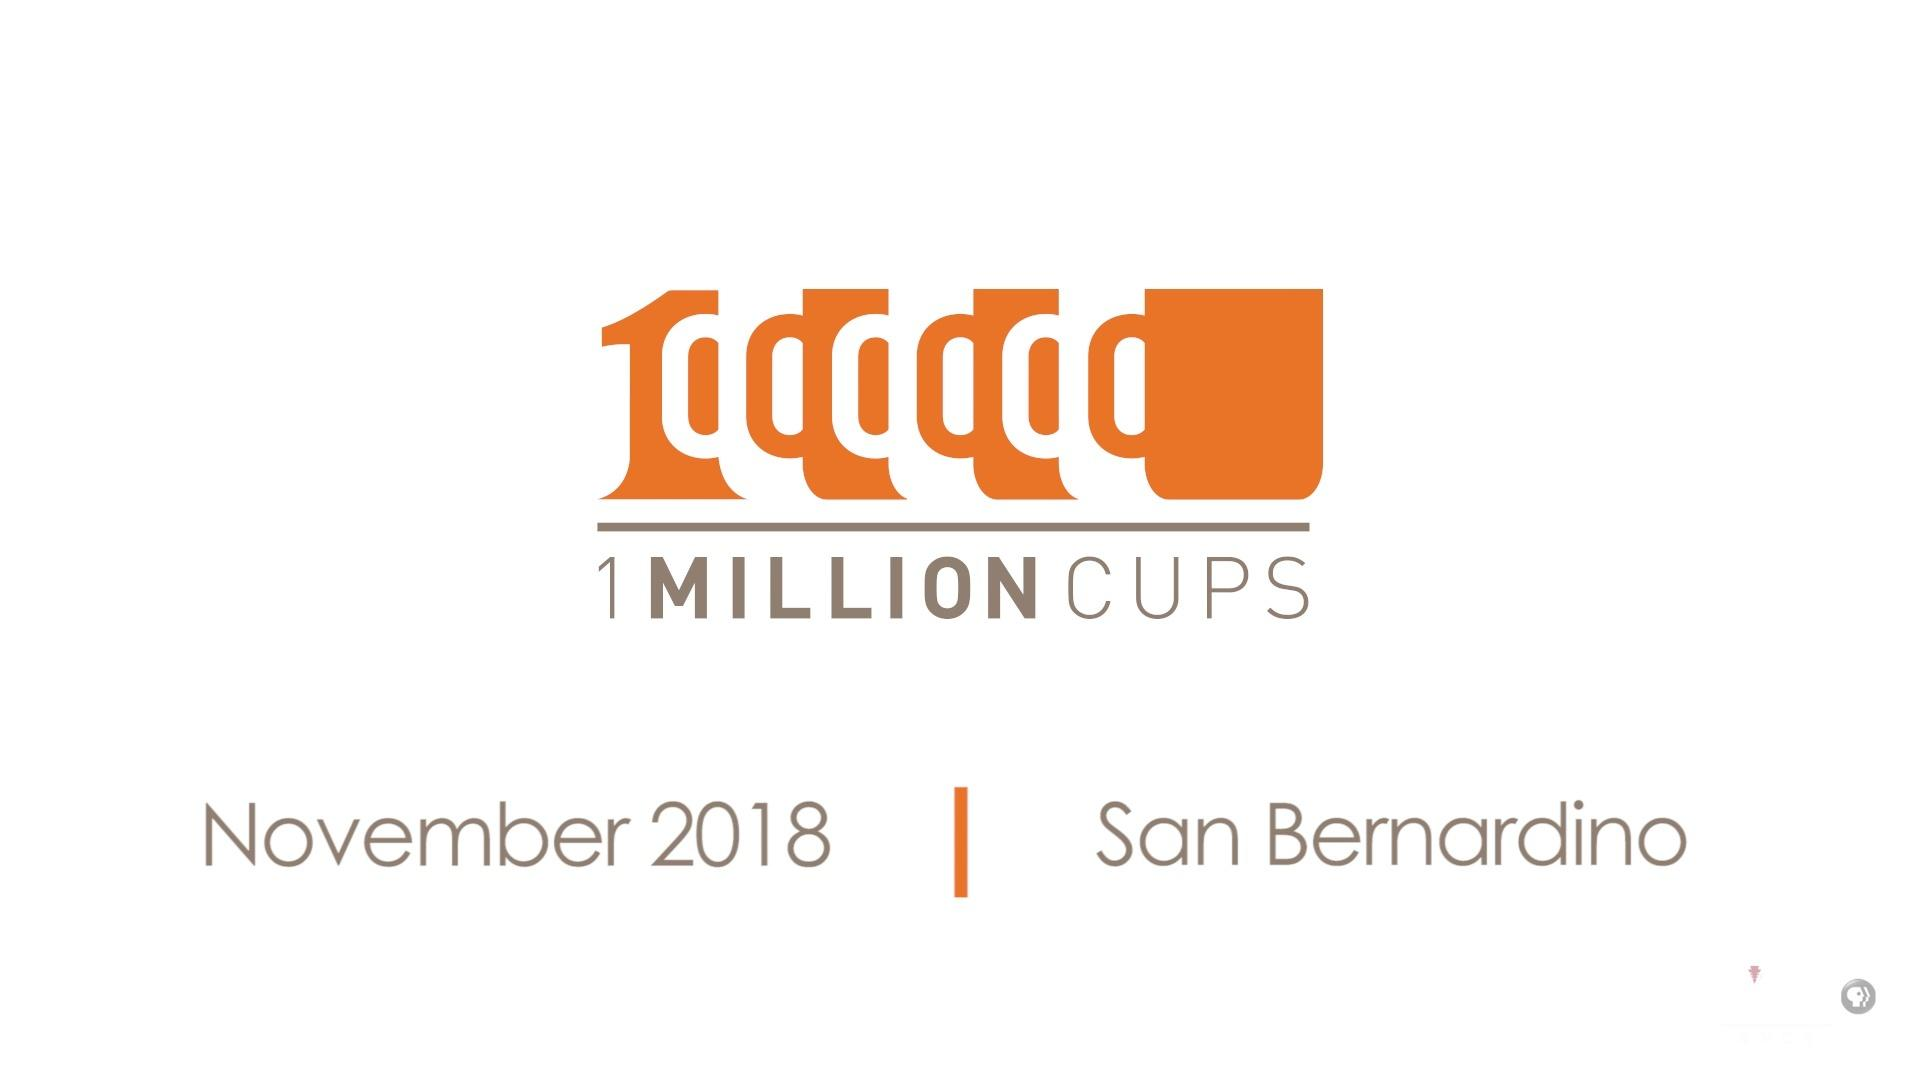 One Million Cups November 2018